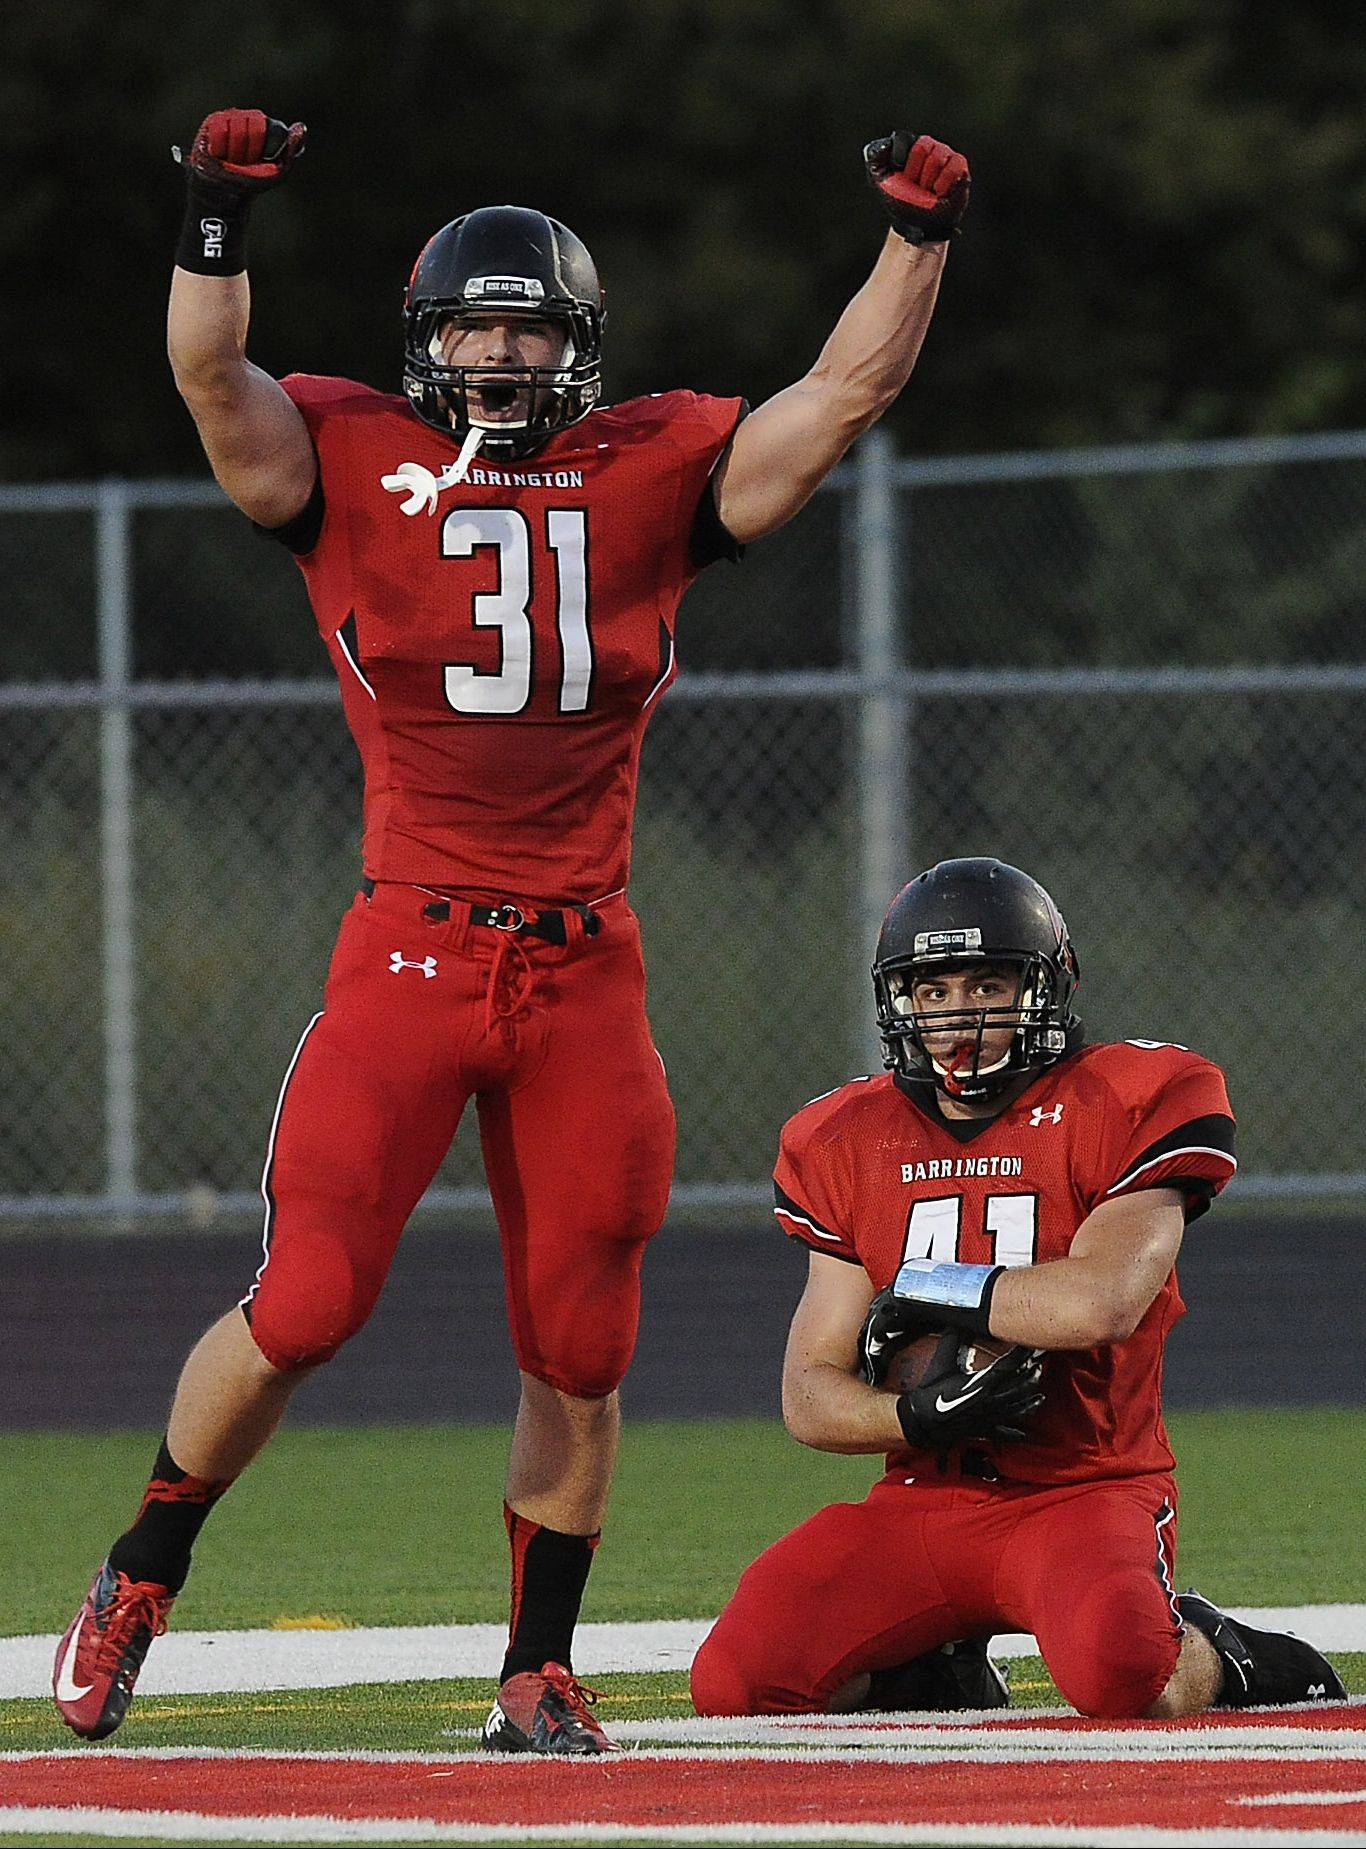 Barrington�s Mark Bornhofen recovers a blocked punt for a touchdown as teammate Colin Castagna celebrates during Thursday�s matchup against visiting Rolling Meadows.